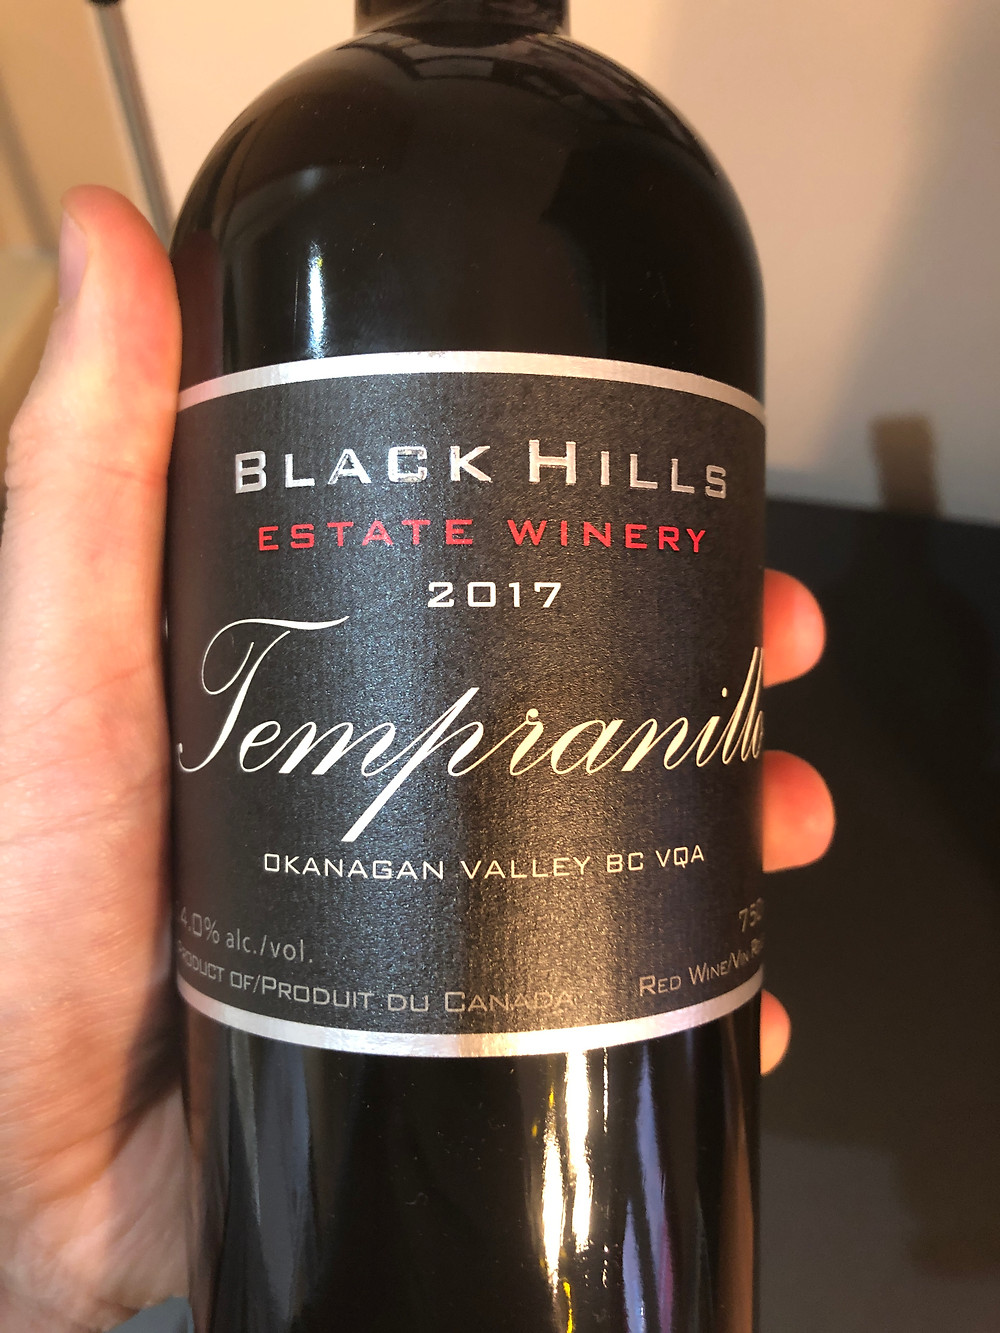 My favorite Tempranillo this year, and it's not even from Spain!